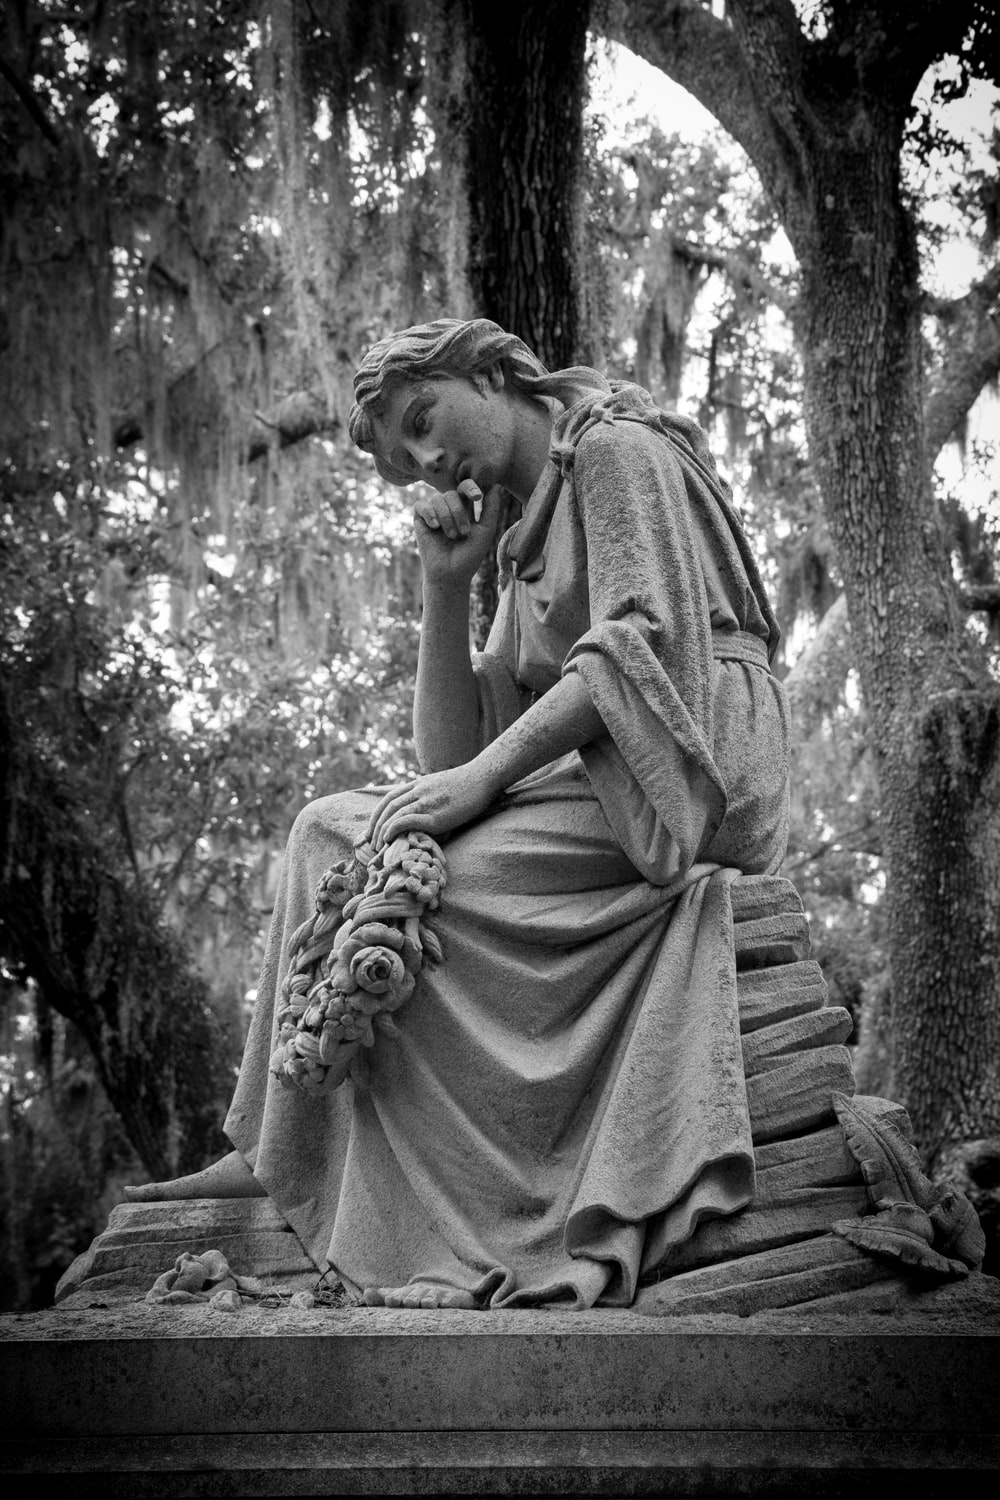 woman in dress statue in grayscale photography